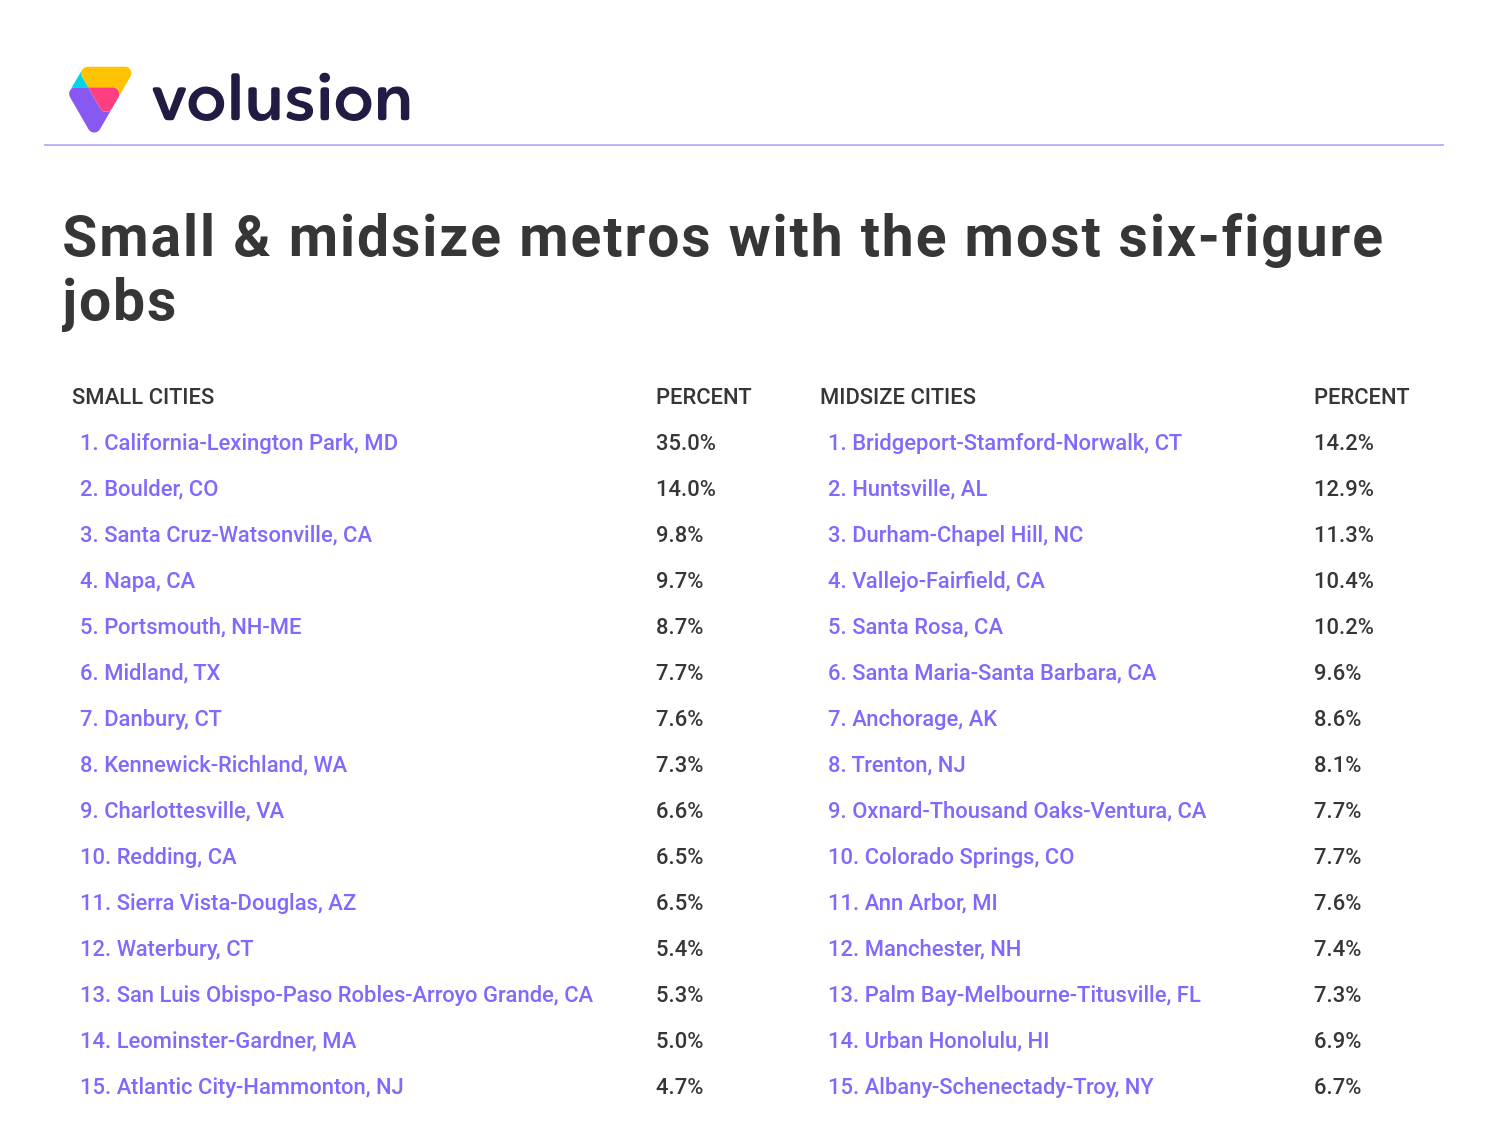 Table showing the small and midsize U.S. cities with the most six-figure jobs